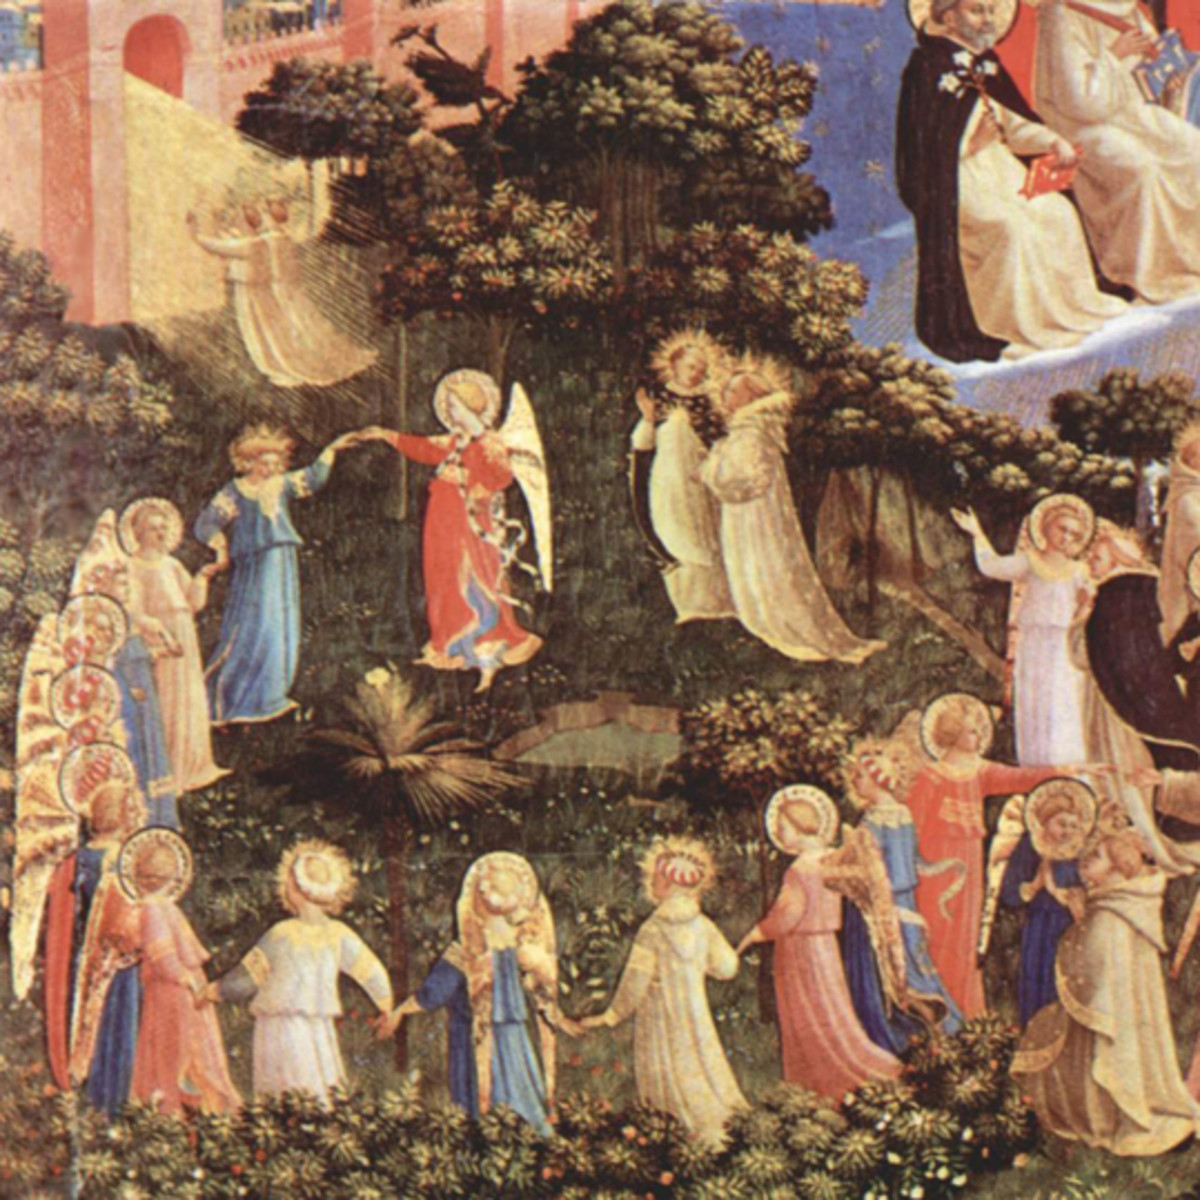 Detail of the Last Judgment by Blessed Fra Angelico